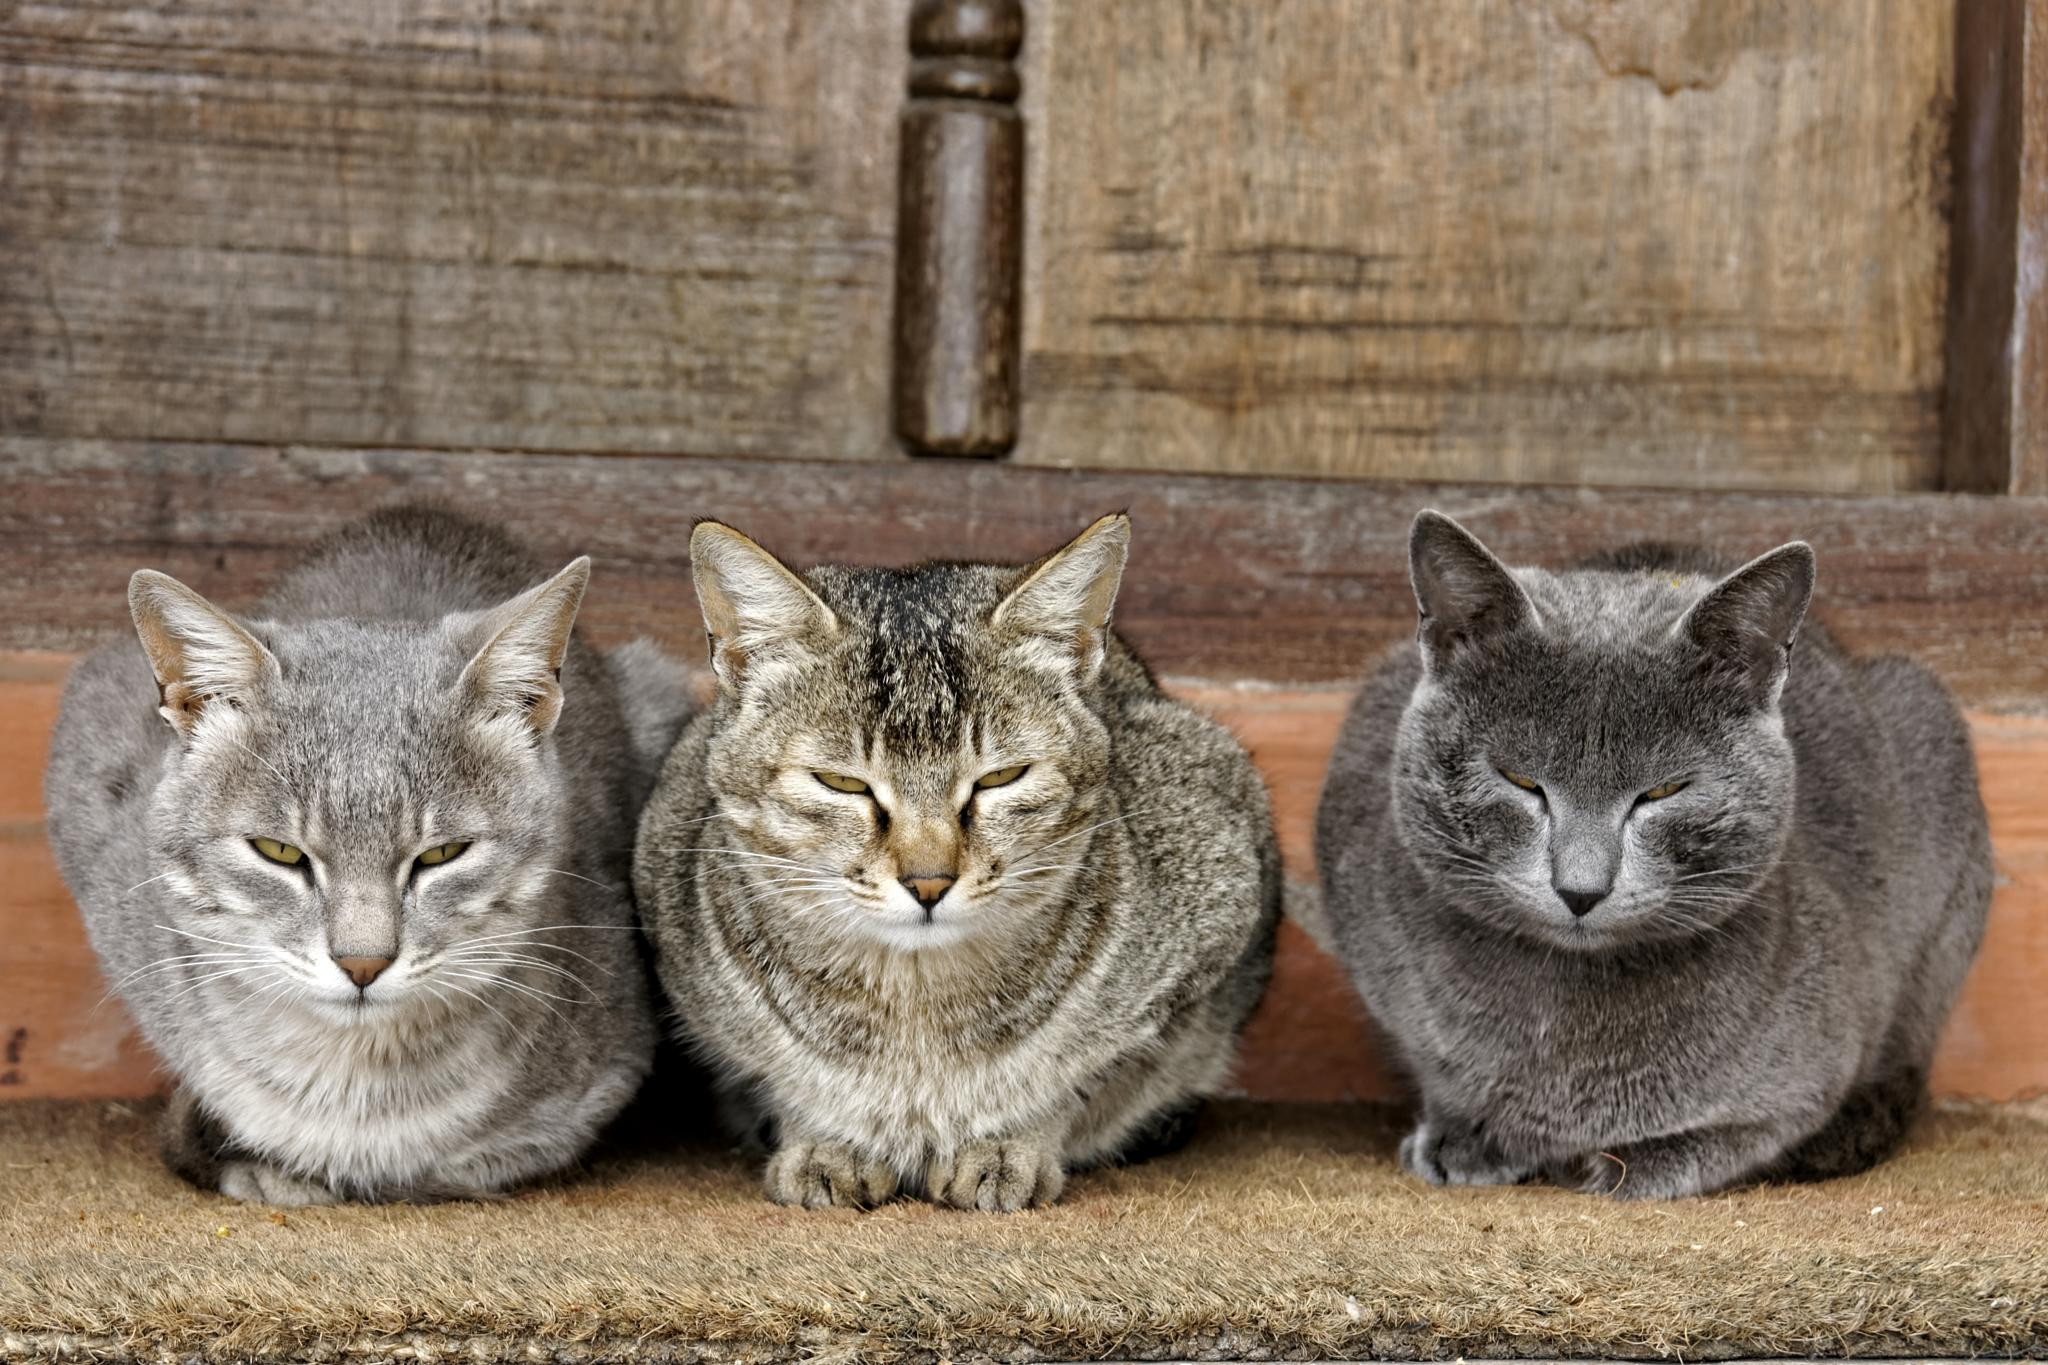 cats by rschuiling